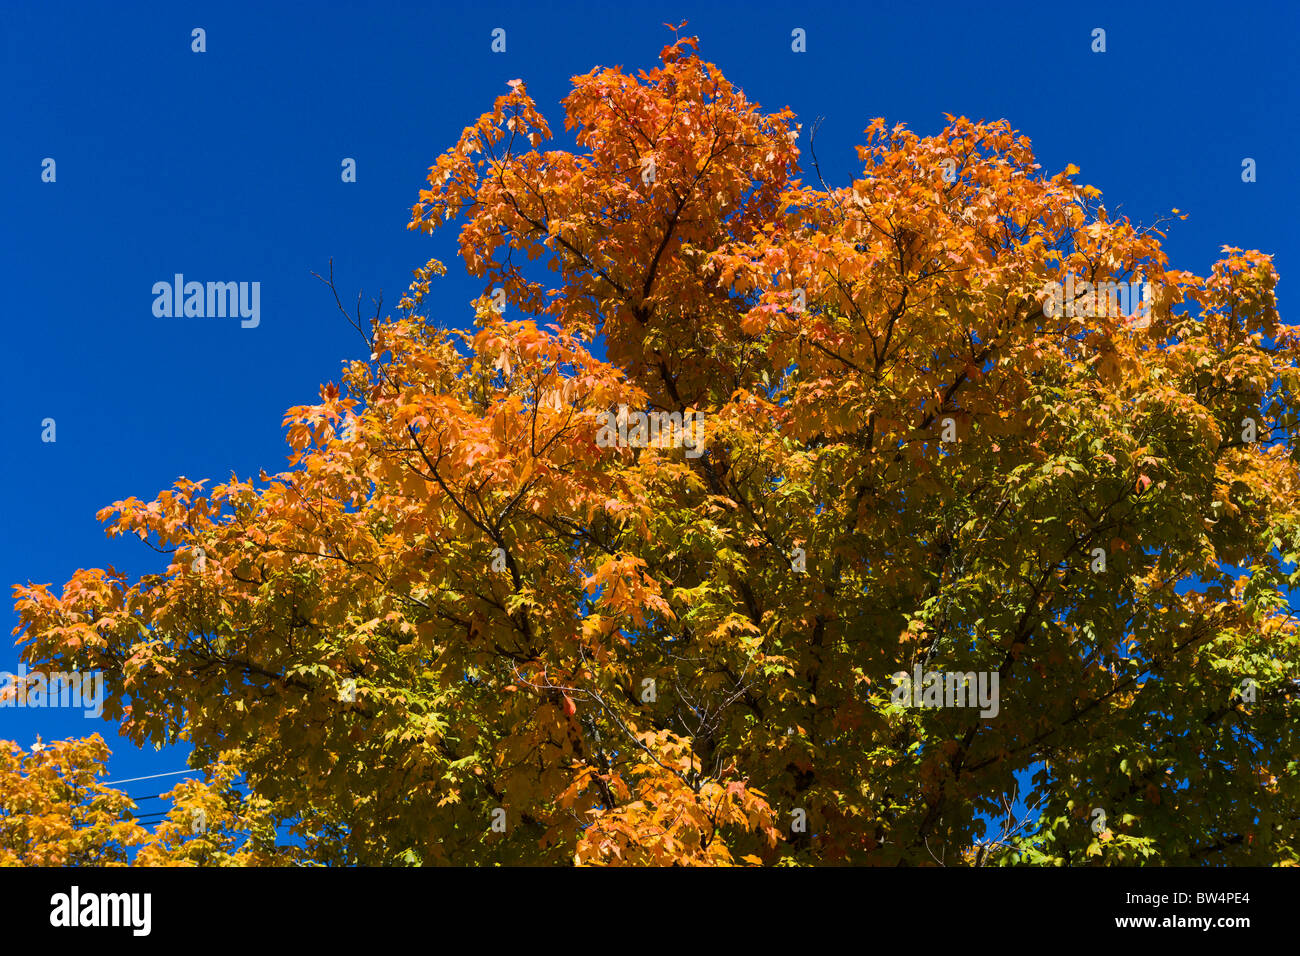 Fall foliage on Lookout Mountain, Chattanooga, Tennessee, USA - Stock Image